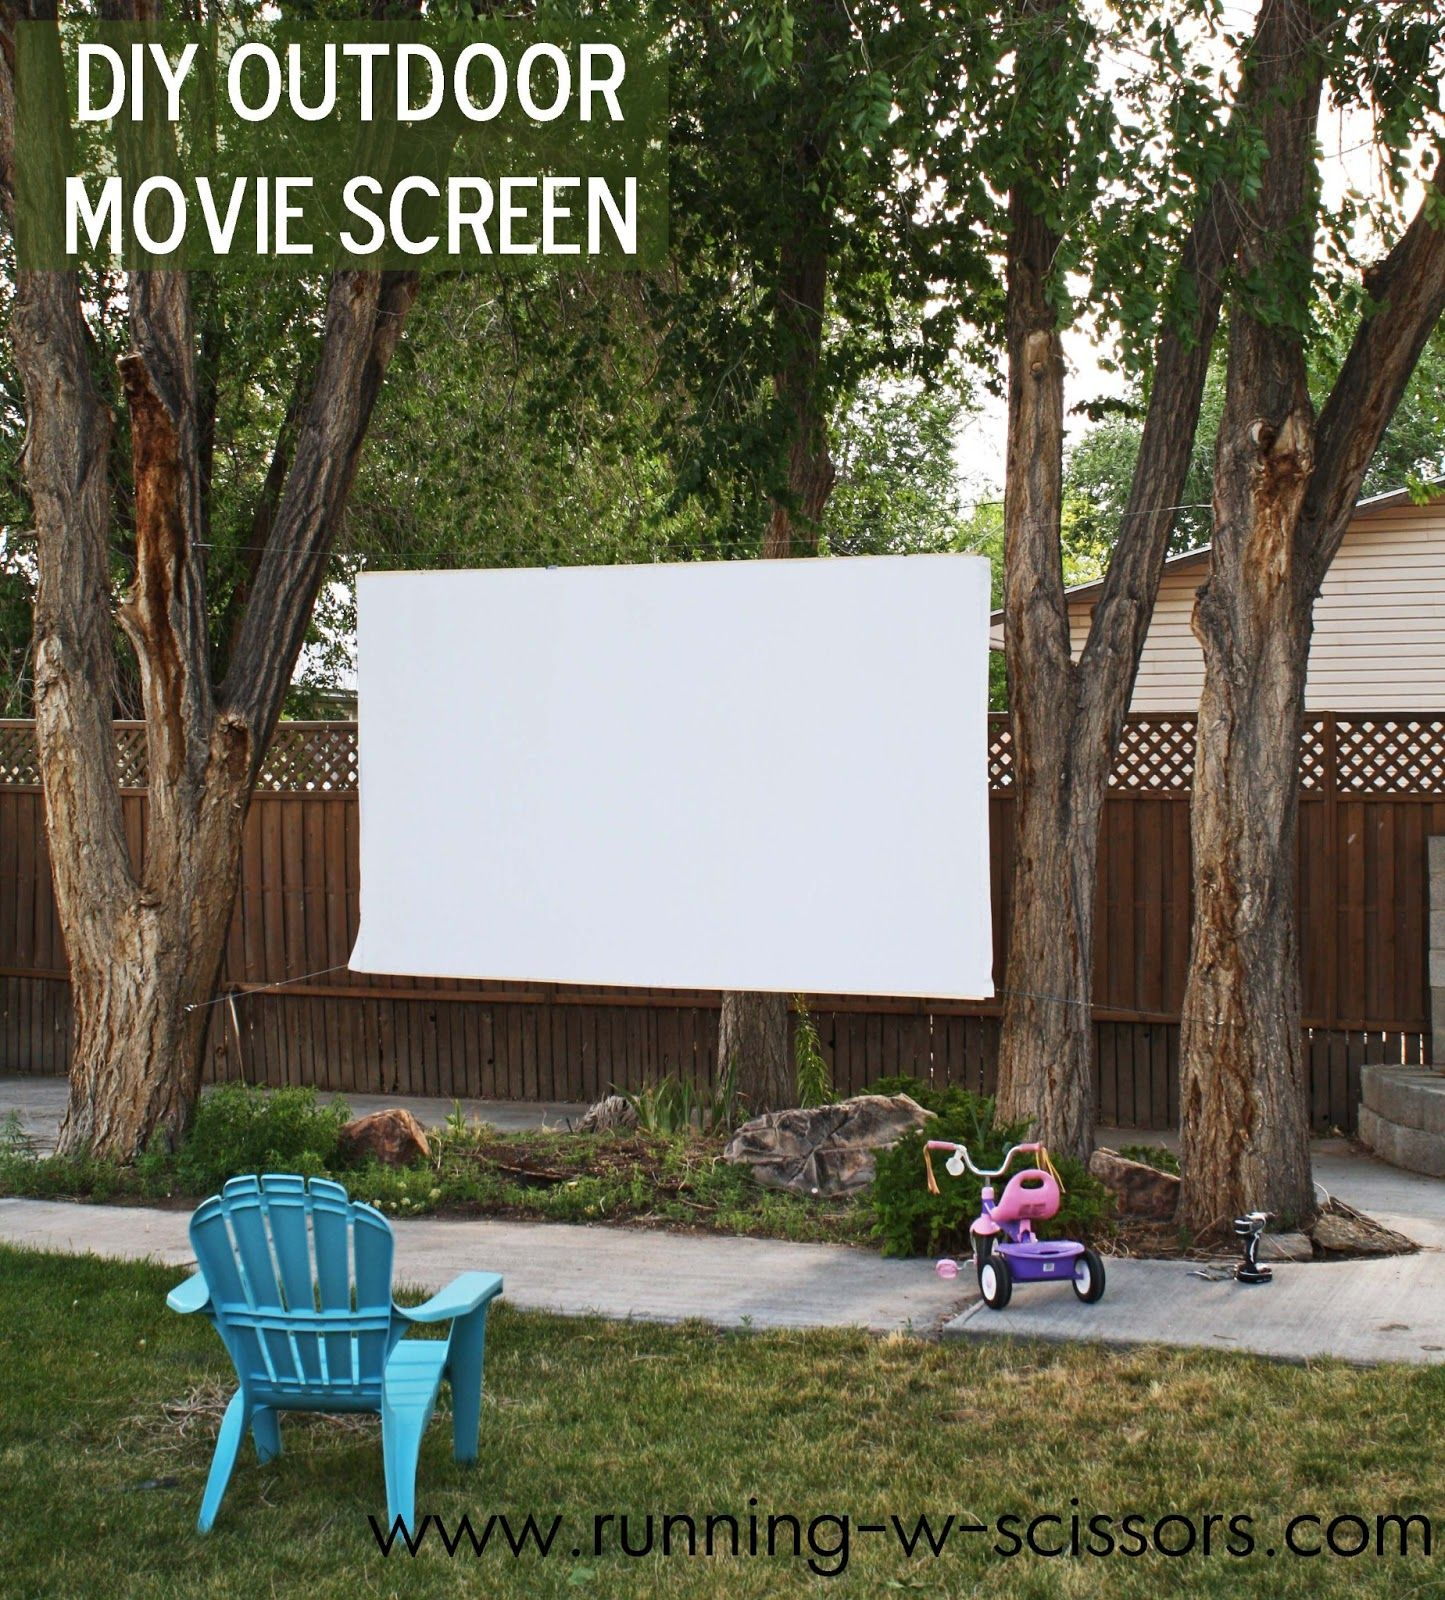 Running with scissors diy outdoor movie screen this basic running with scissors diy outdoor movie screen this basic principle could be modified to freerunsca Image collections